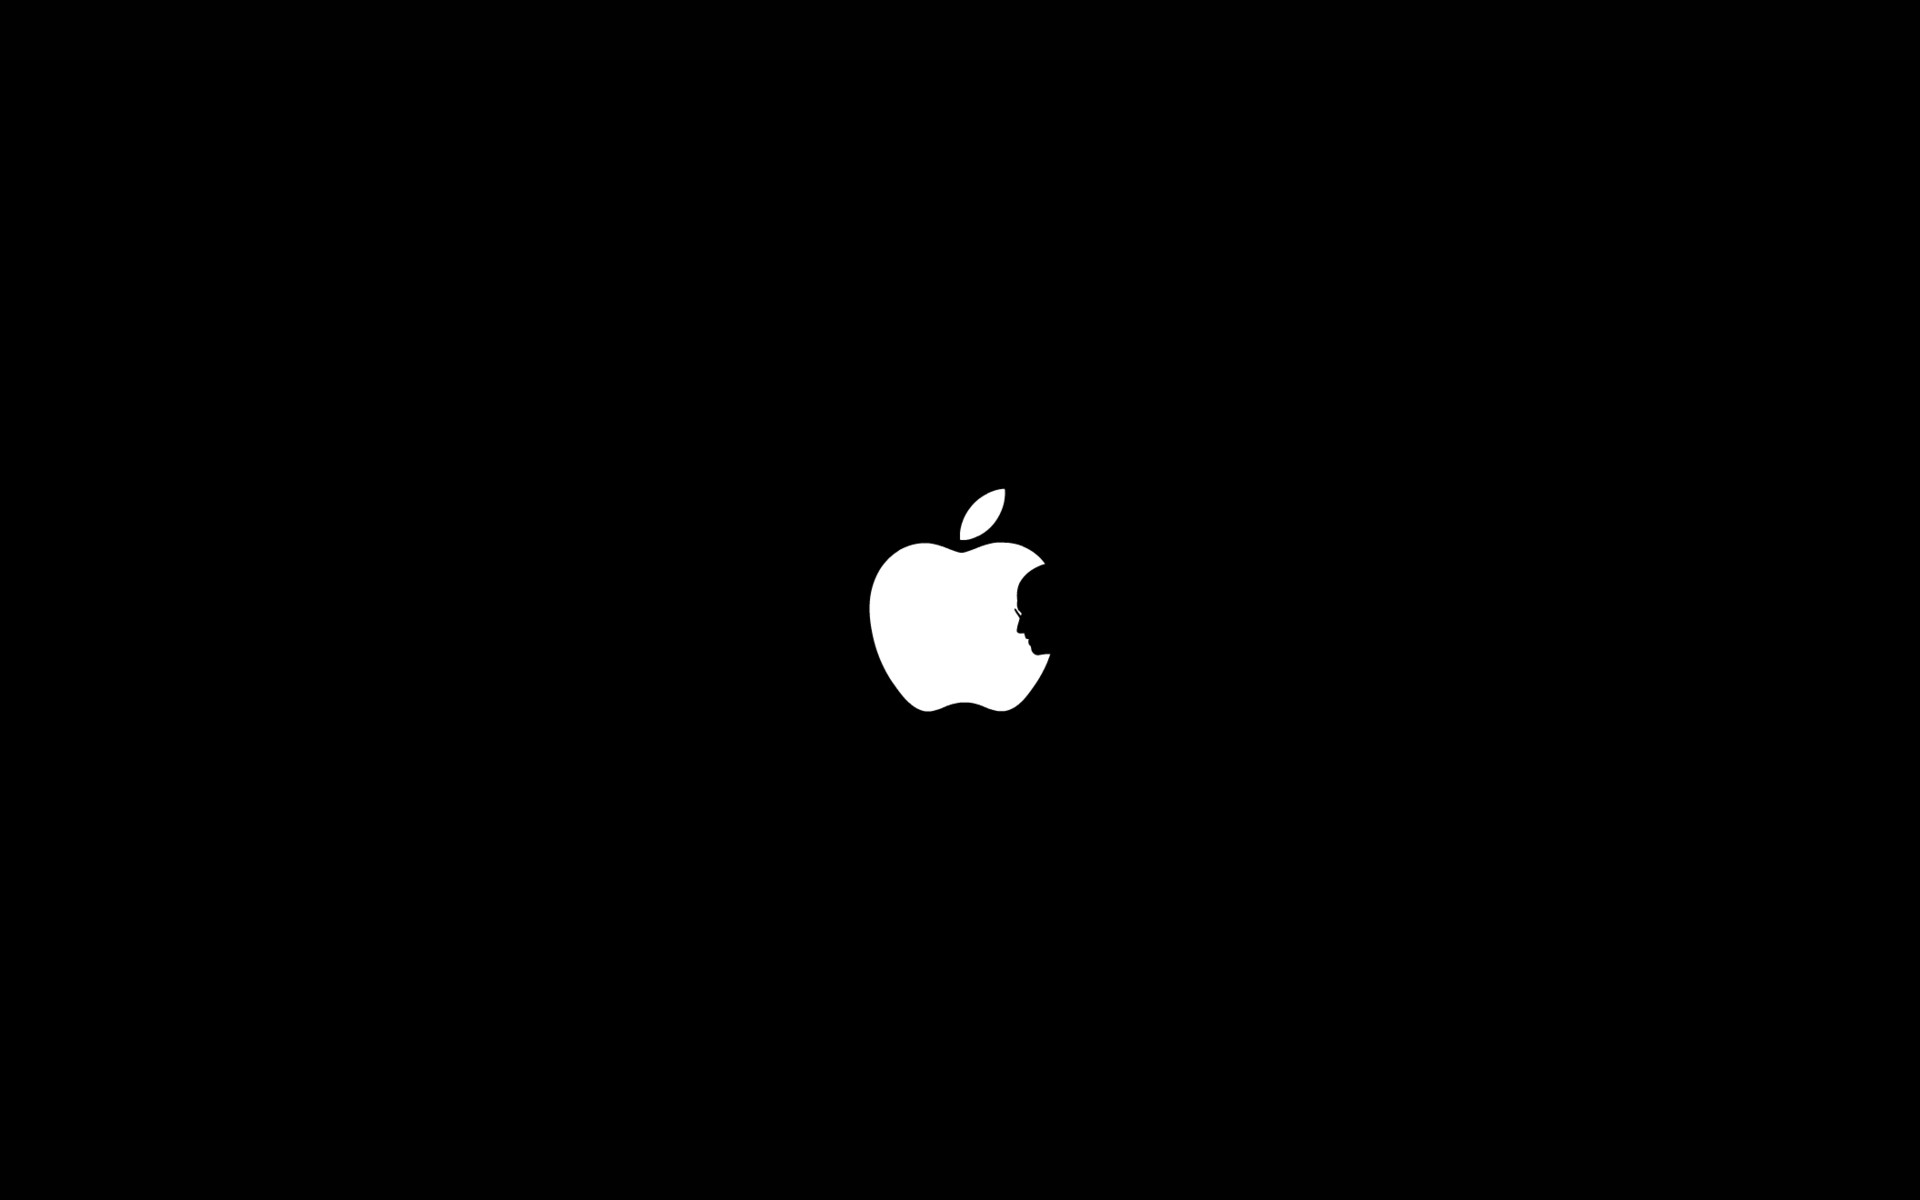 Apple logo hd wallpaper 78 images 1920x1200 apple logo wallpapers full hd wallpaper search thecheapjerseys Gallery